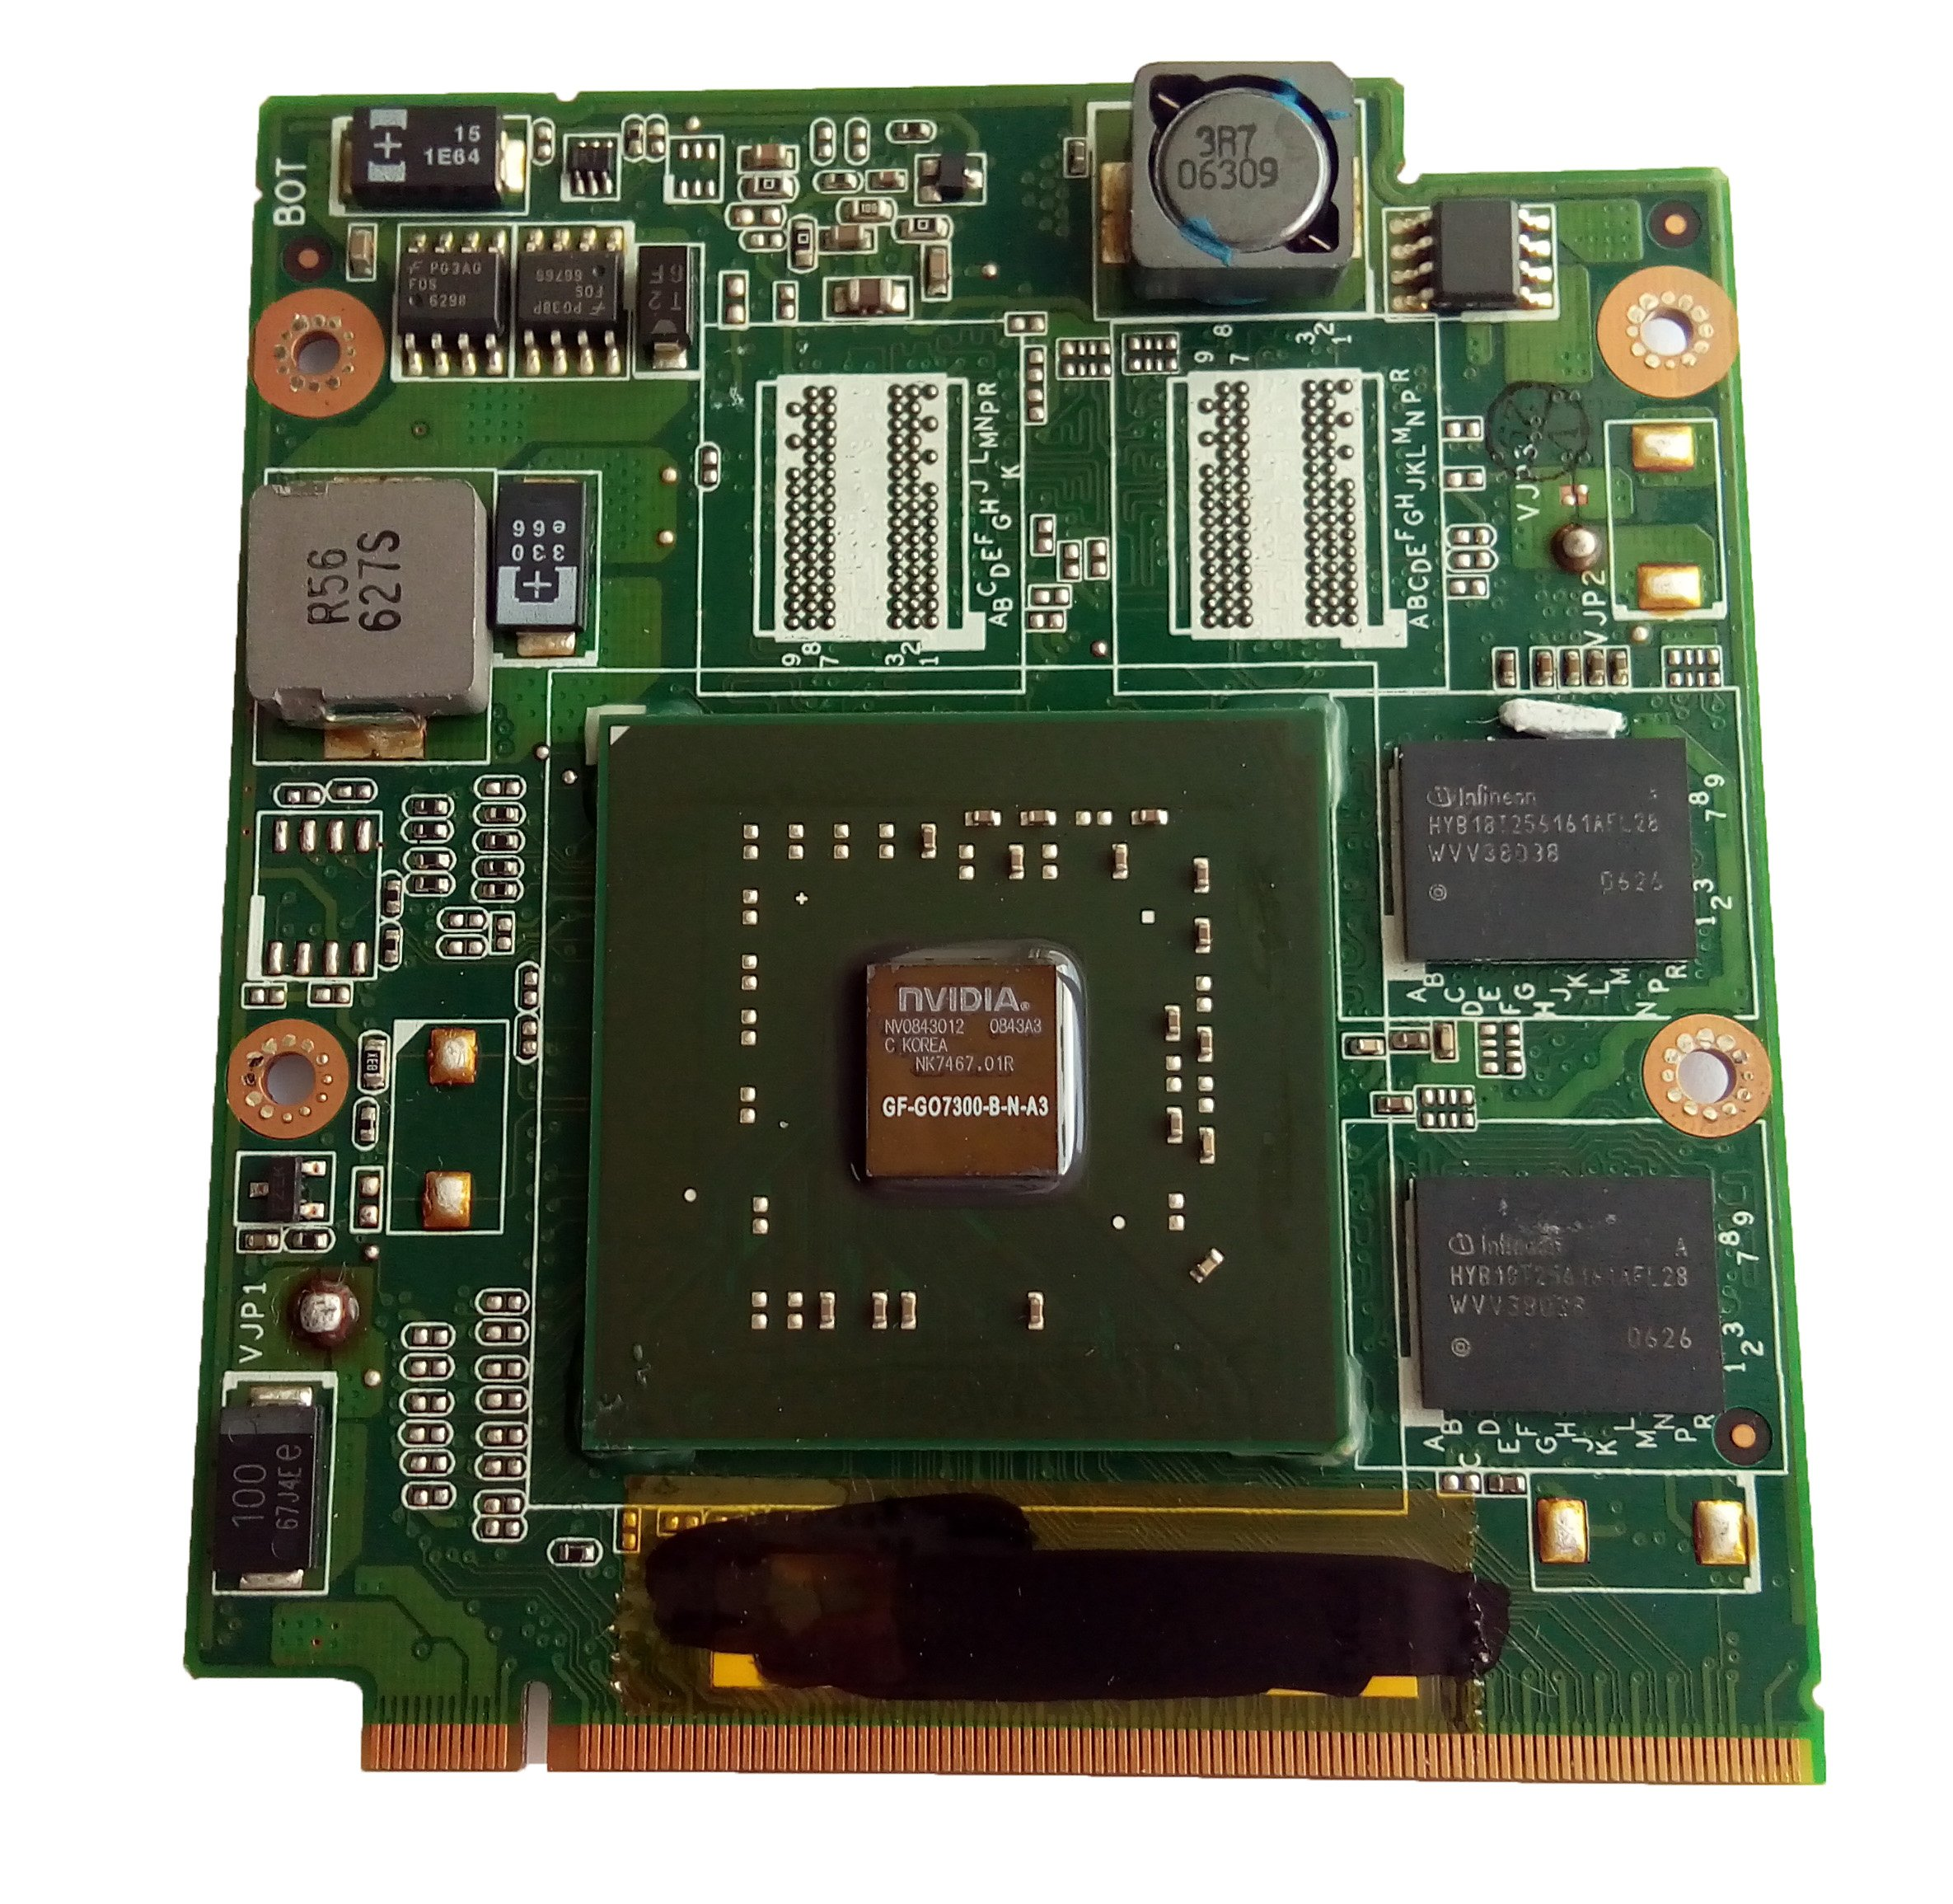 128M Laptop VGA Graphic Card GF-G07300-B-N-AB for Asus A8JC Laptop 60-NF8VG2000-B02 by StylusPen (Image #3)